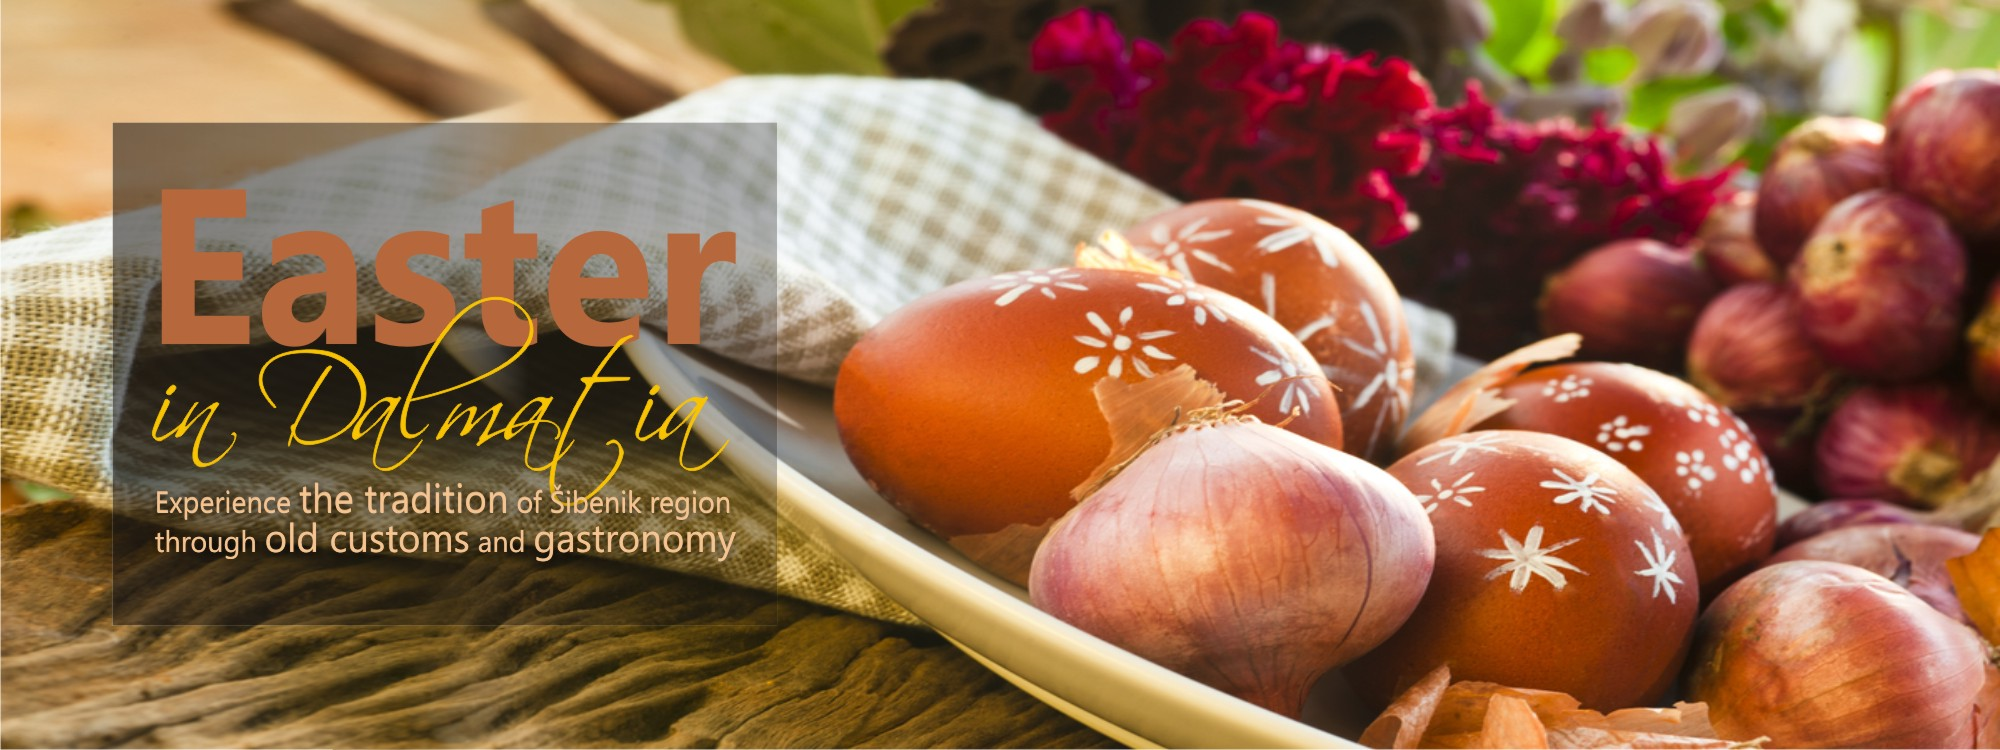 Easter_in_dalmatia_traditoin_croatia_Solaris_beach_resort1